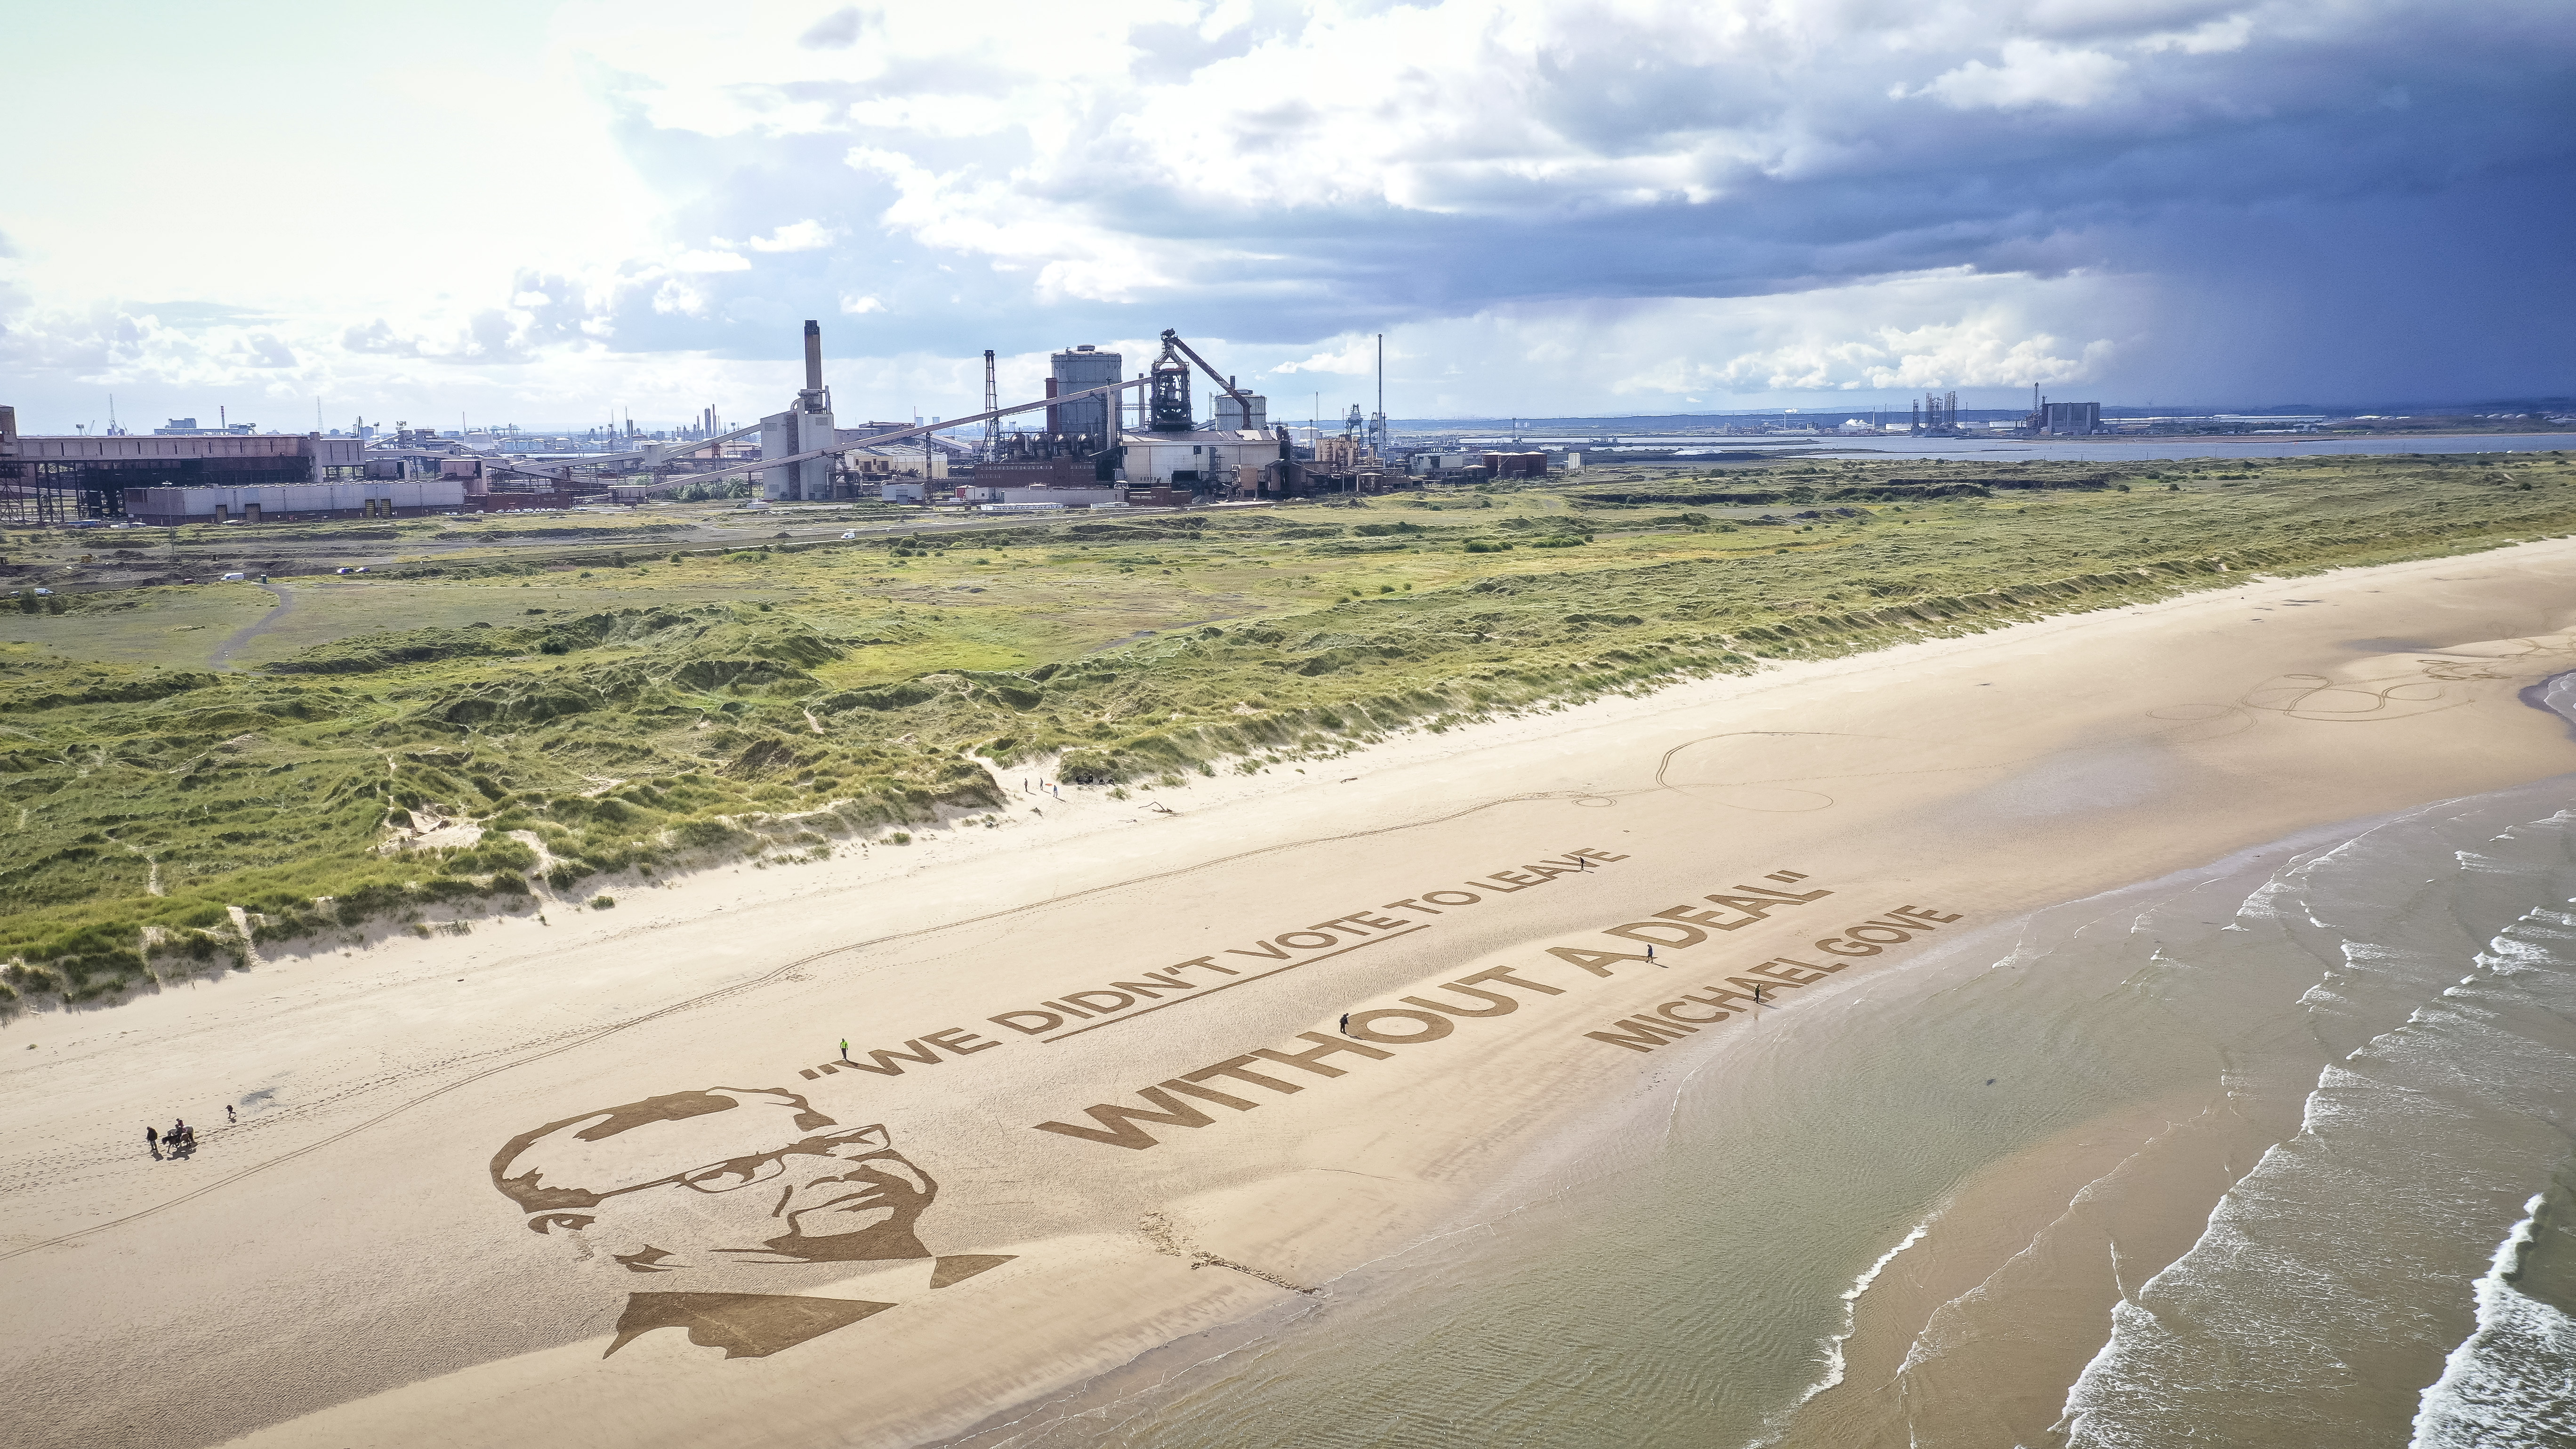 The installation on Redcar beach